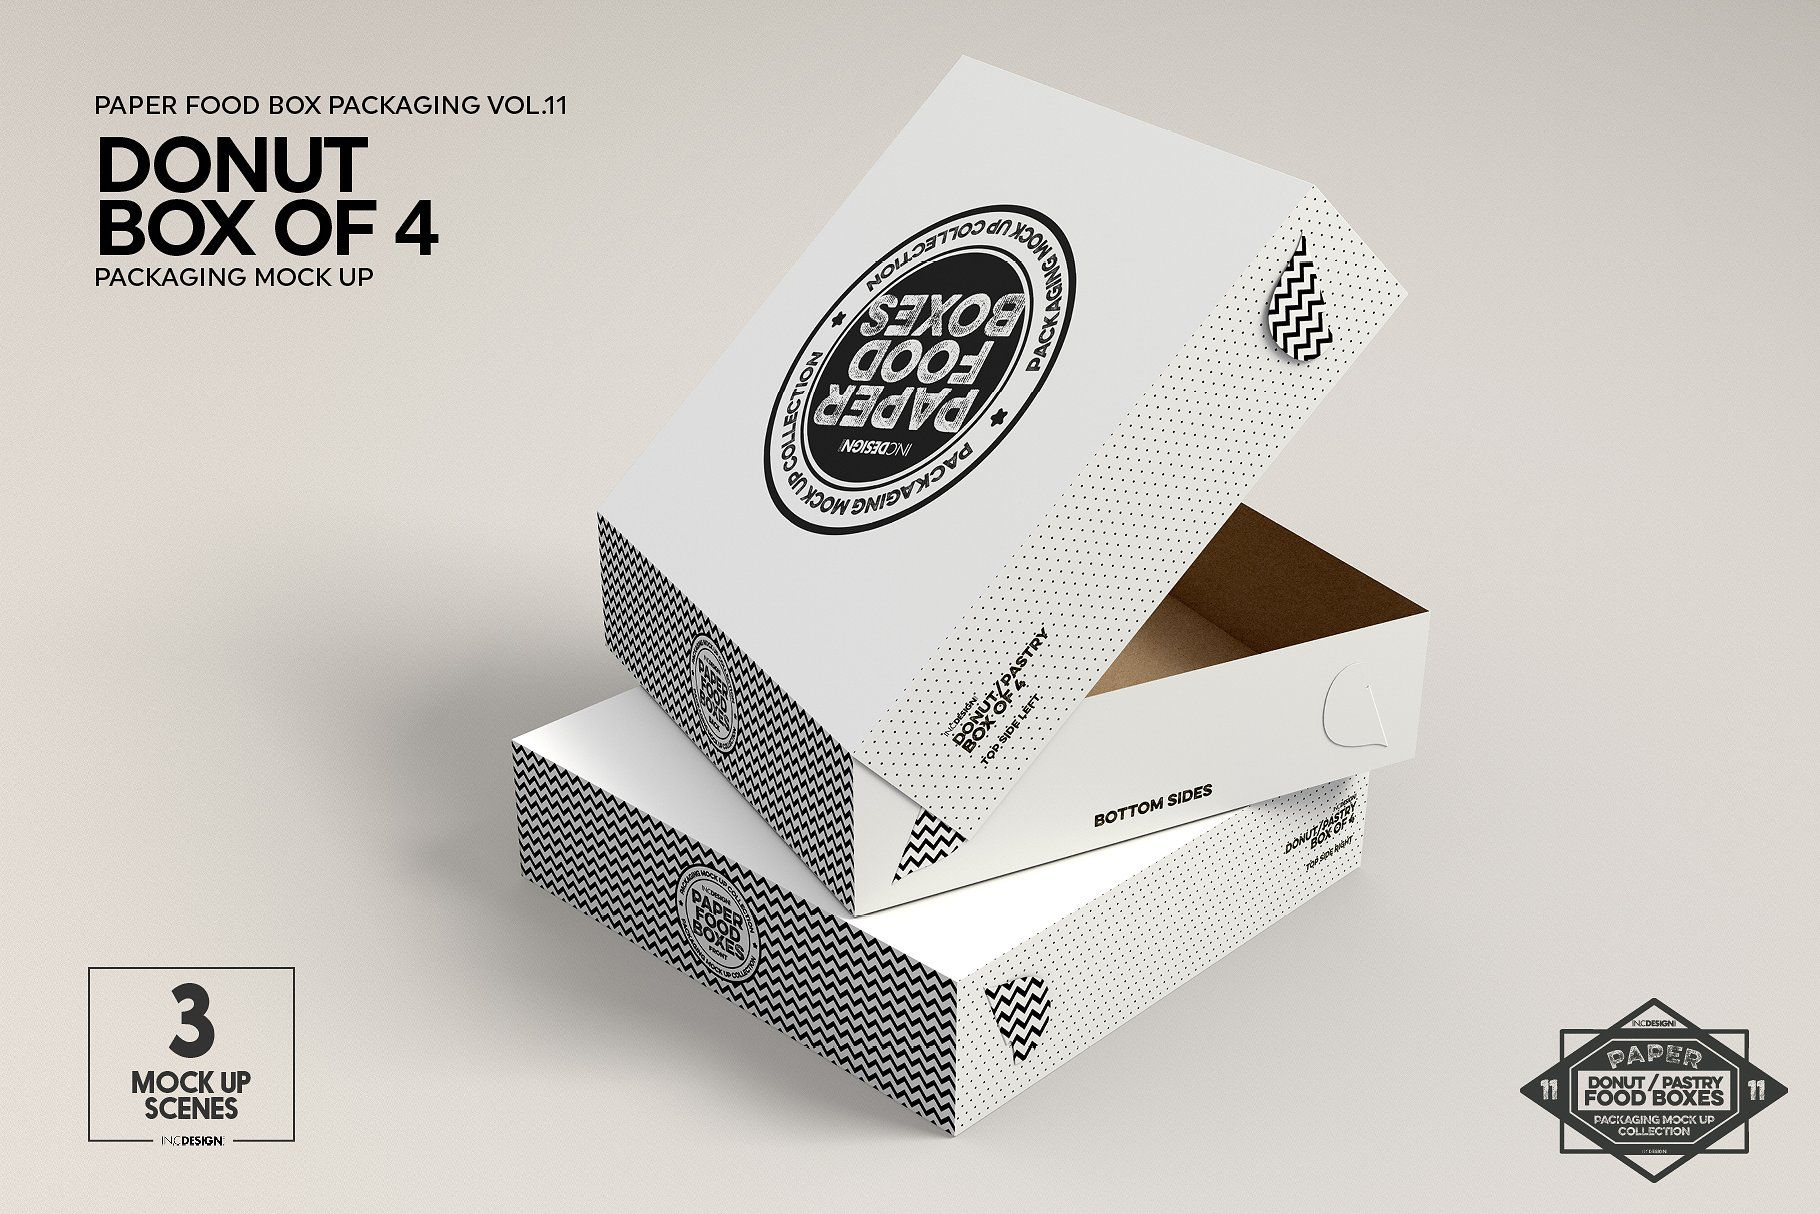 Download Box Of Four Donut Pastry Box Mockup Food Box Packaging Box Packaging Box Mockup